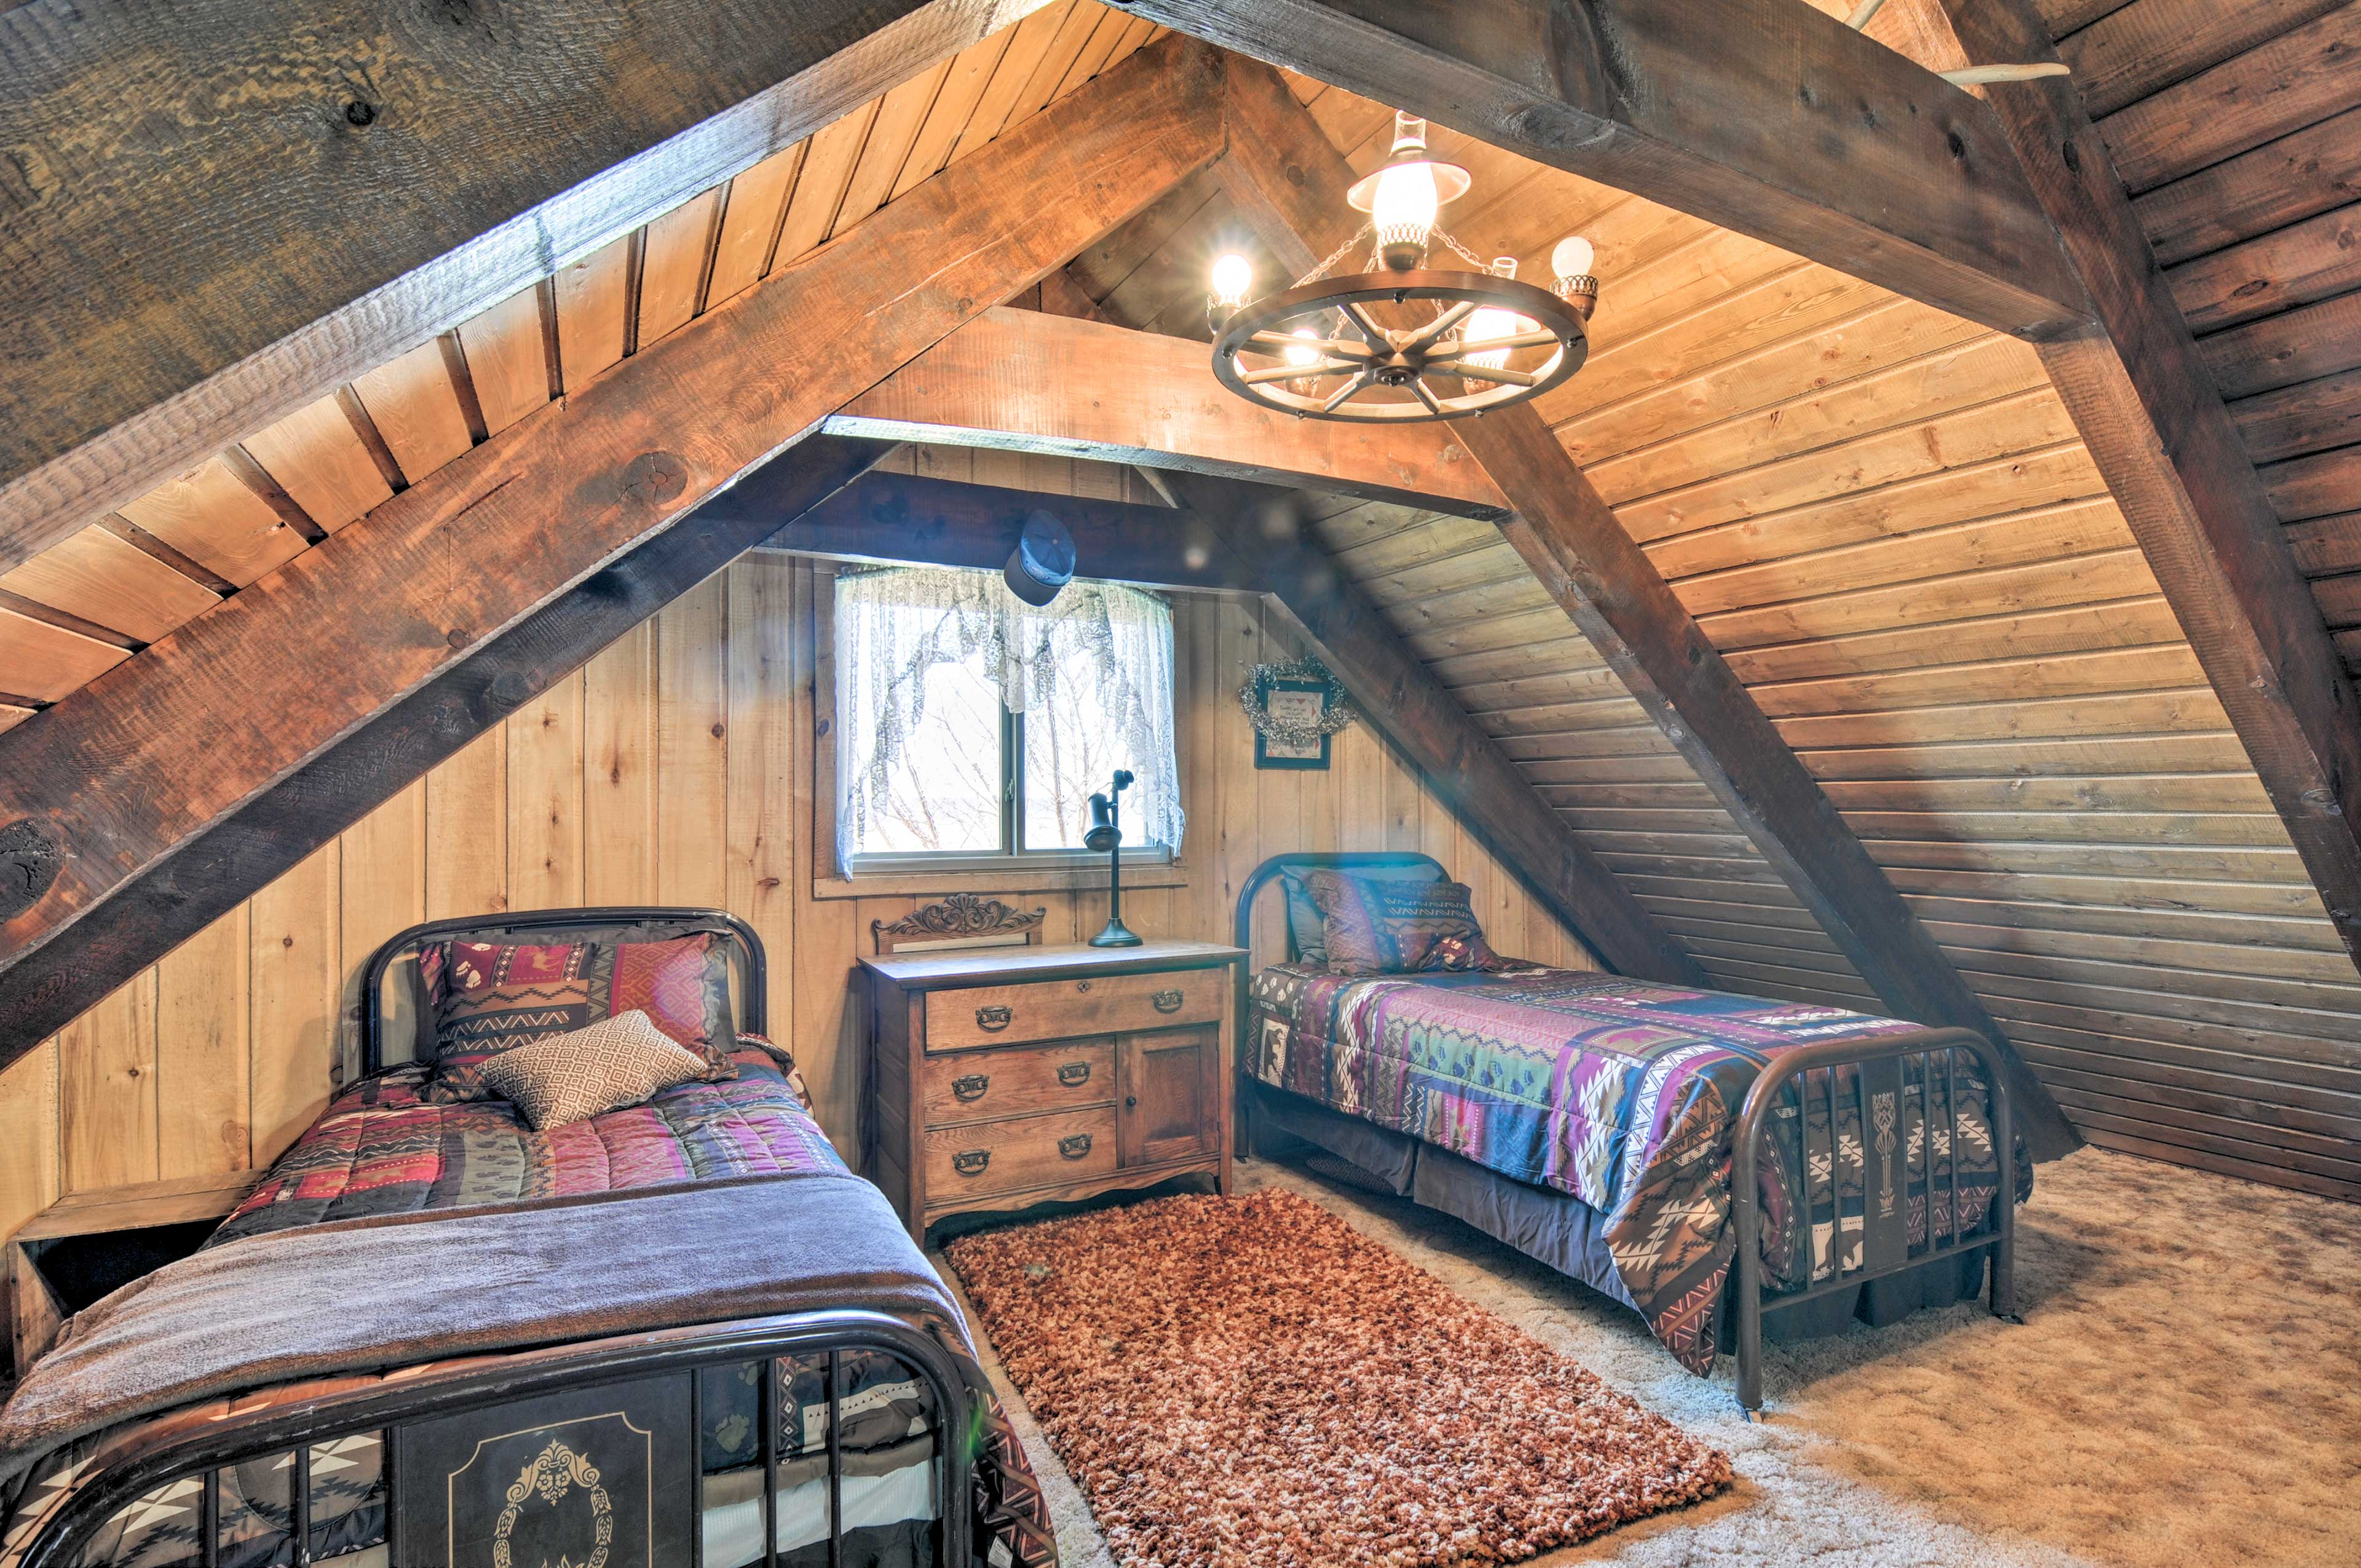 Kids will enjoy the twin beds in the loft!